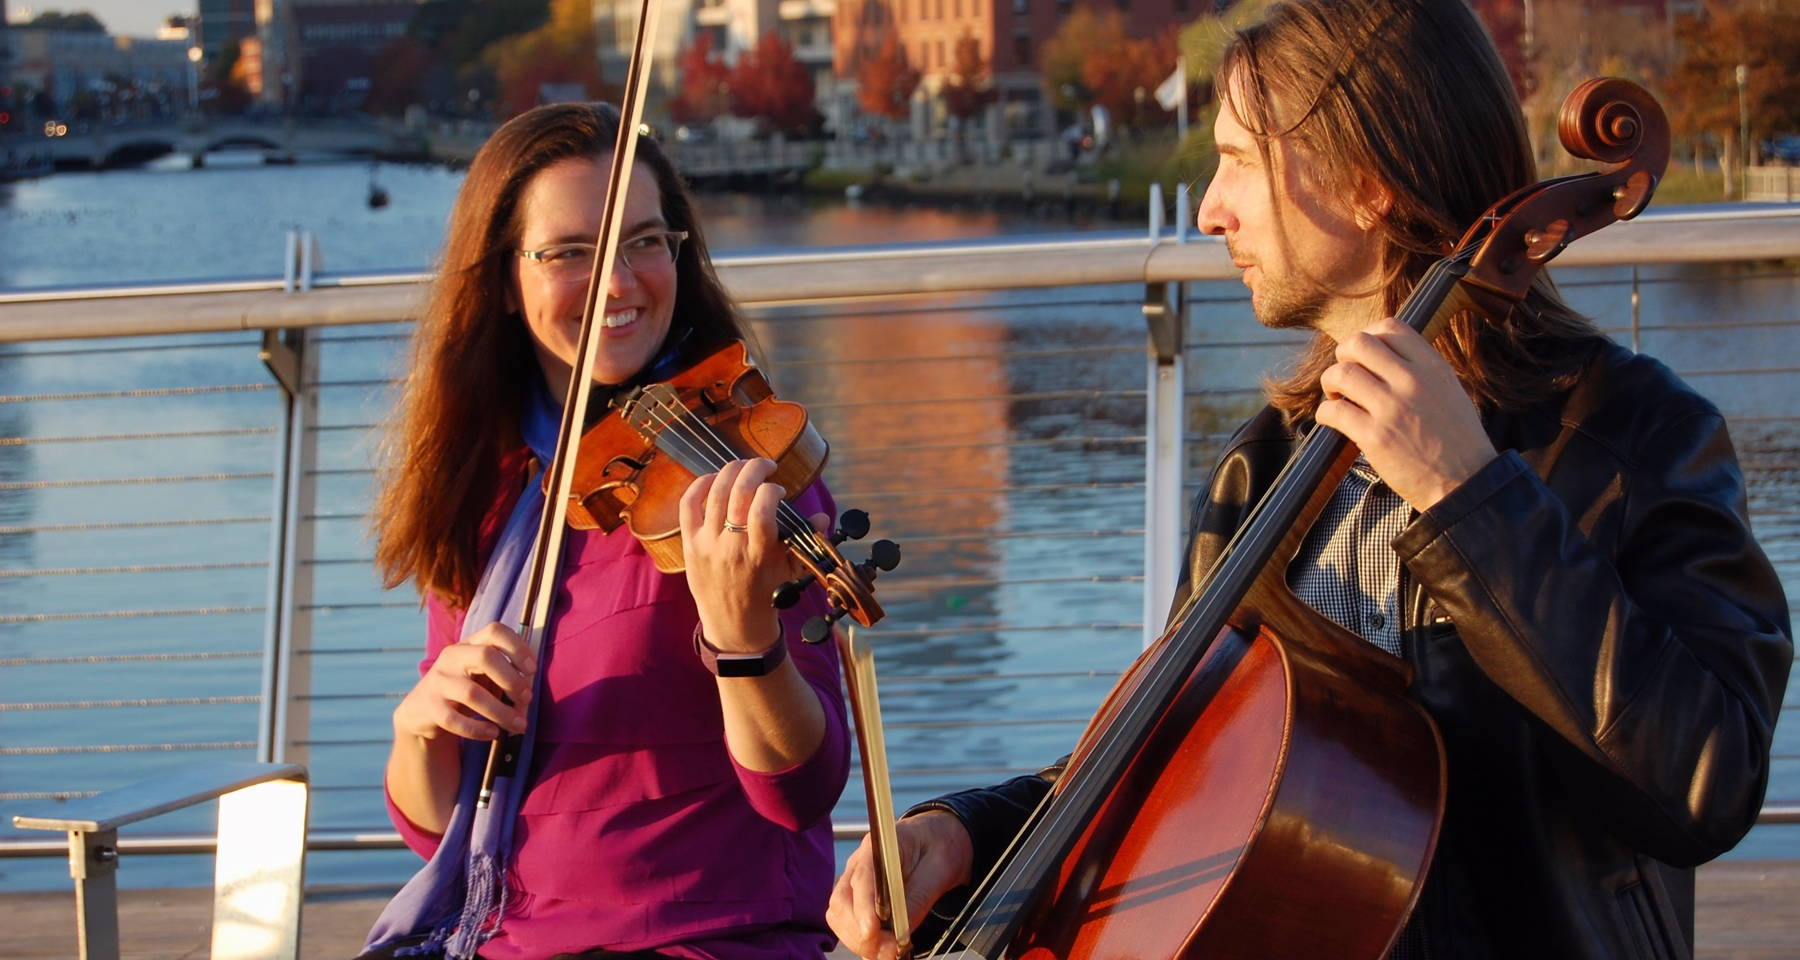 From Classical to Folk and Beyond: Peter on cello and EmmaLee on violin